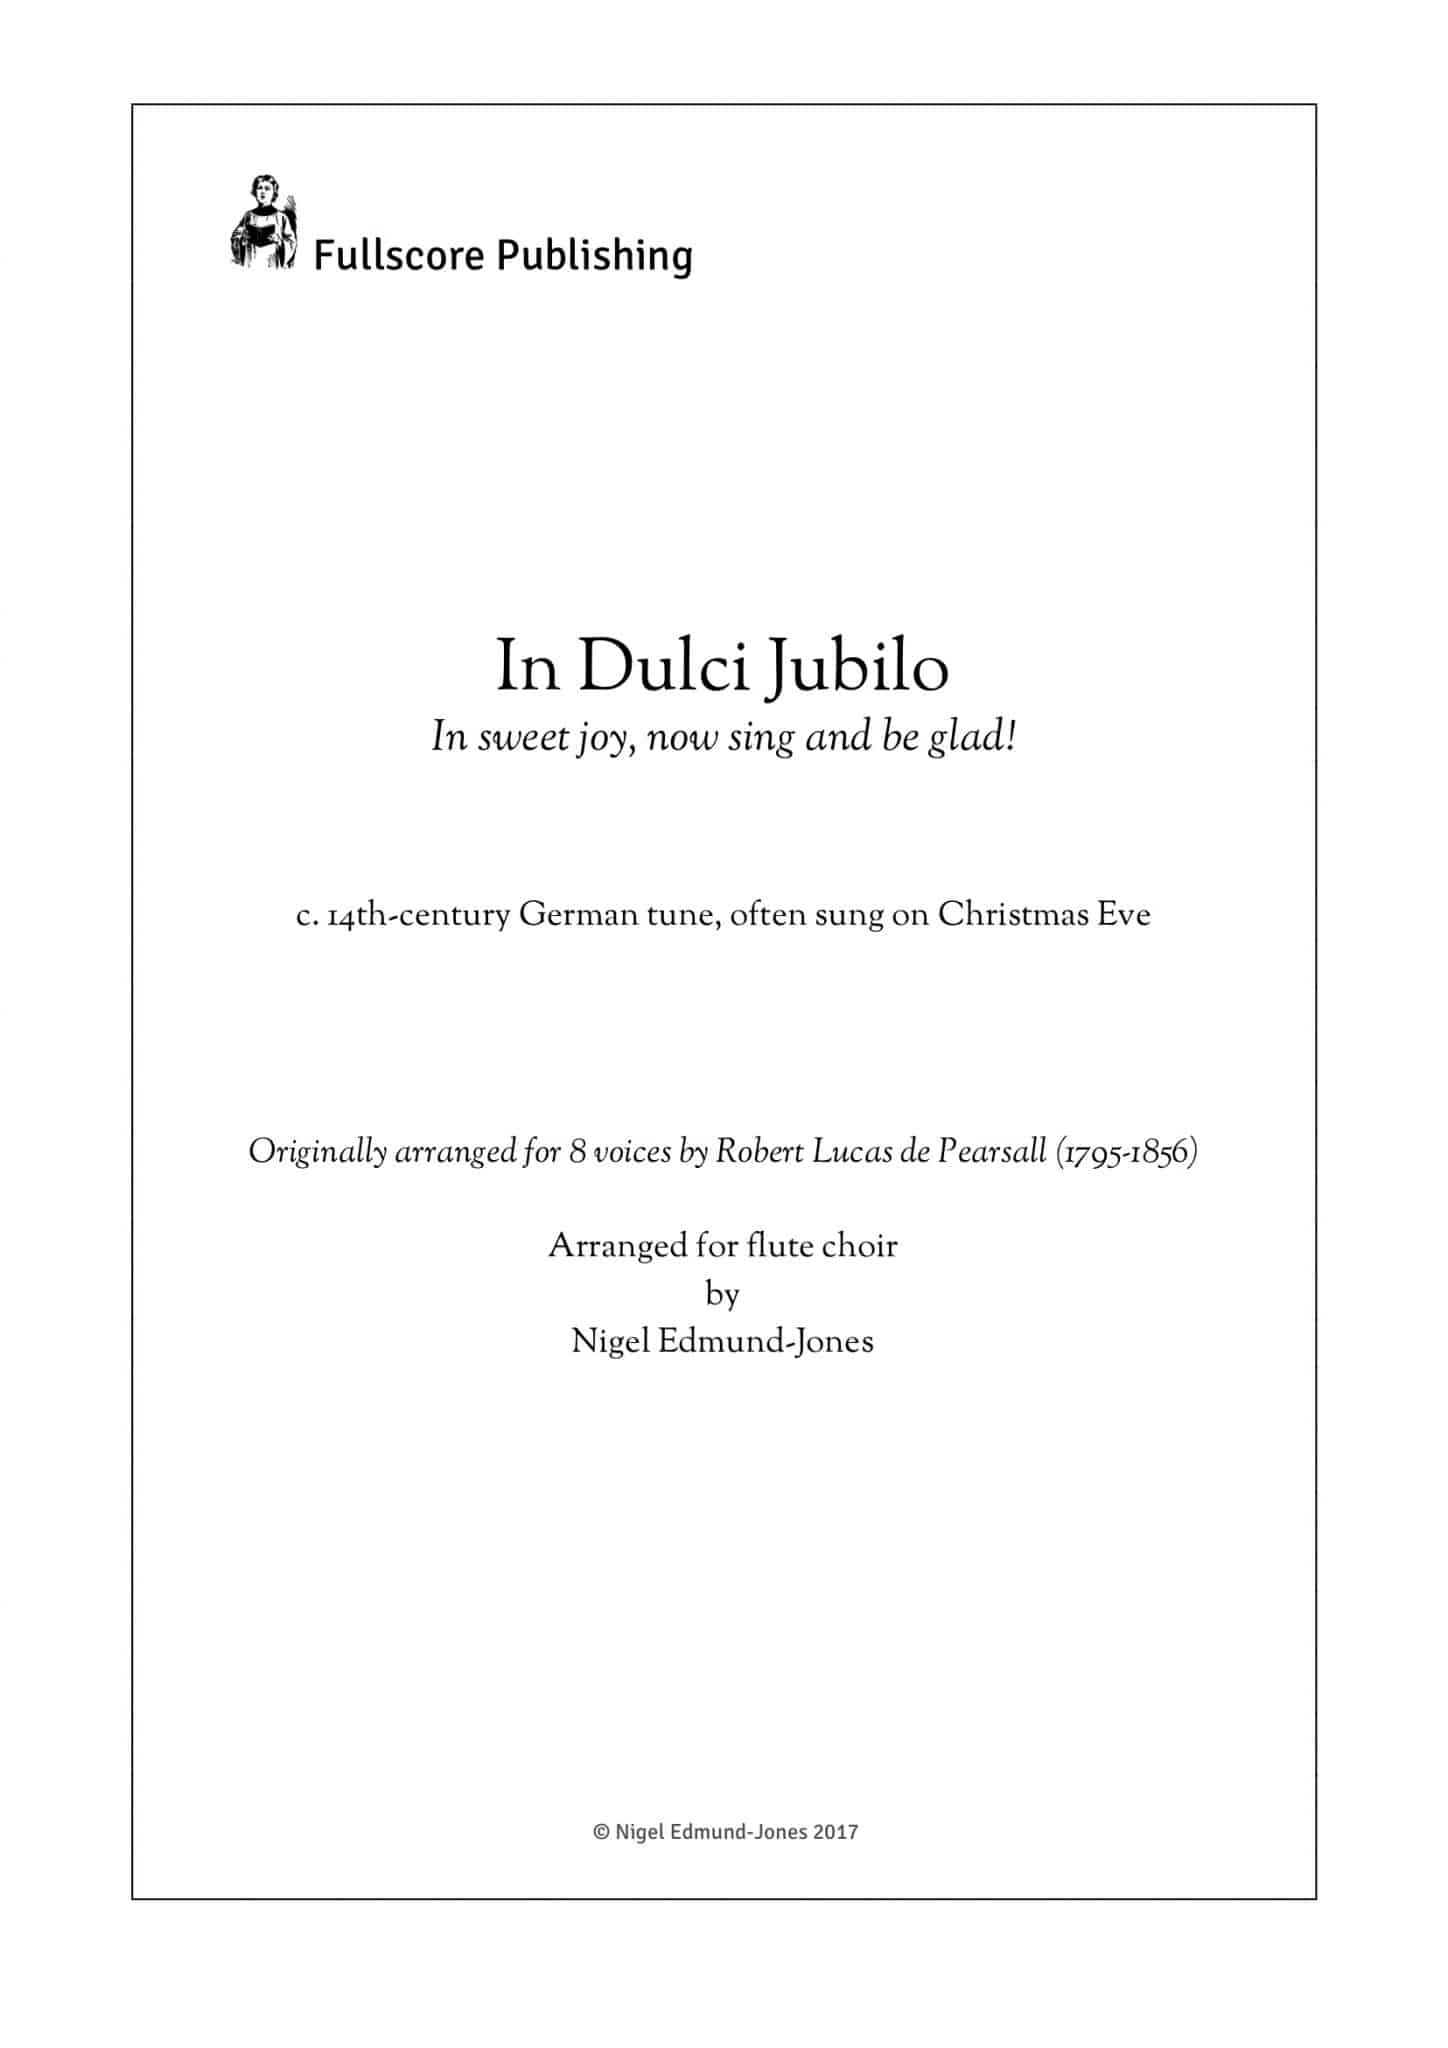 Simply Flute - In Dulci Jubilo - all parts_title sheet_no words copy_Part1